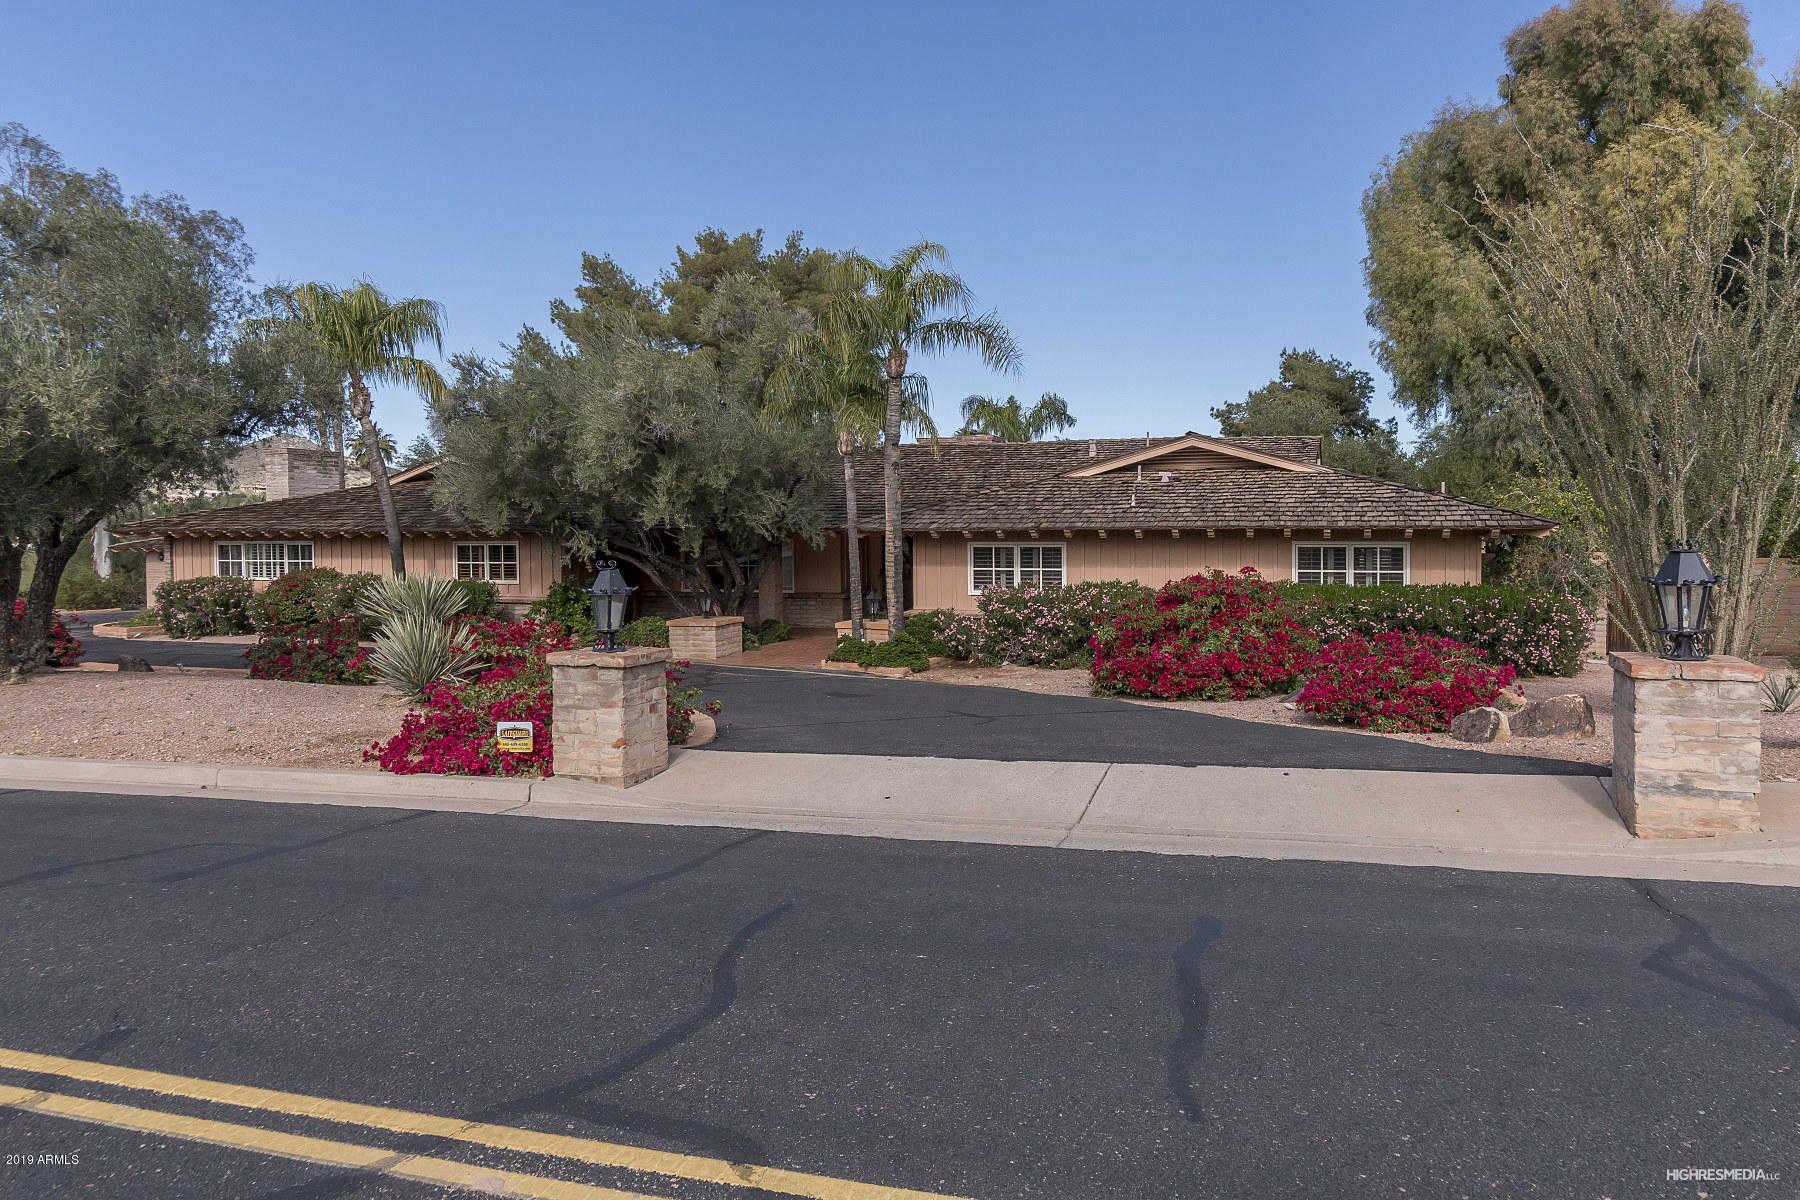 $1,650,000 - 5Br/5Ba - Home for Sale in N/a, Paradise Valley